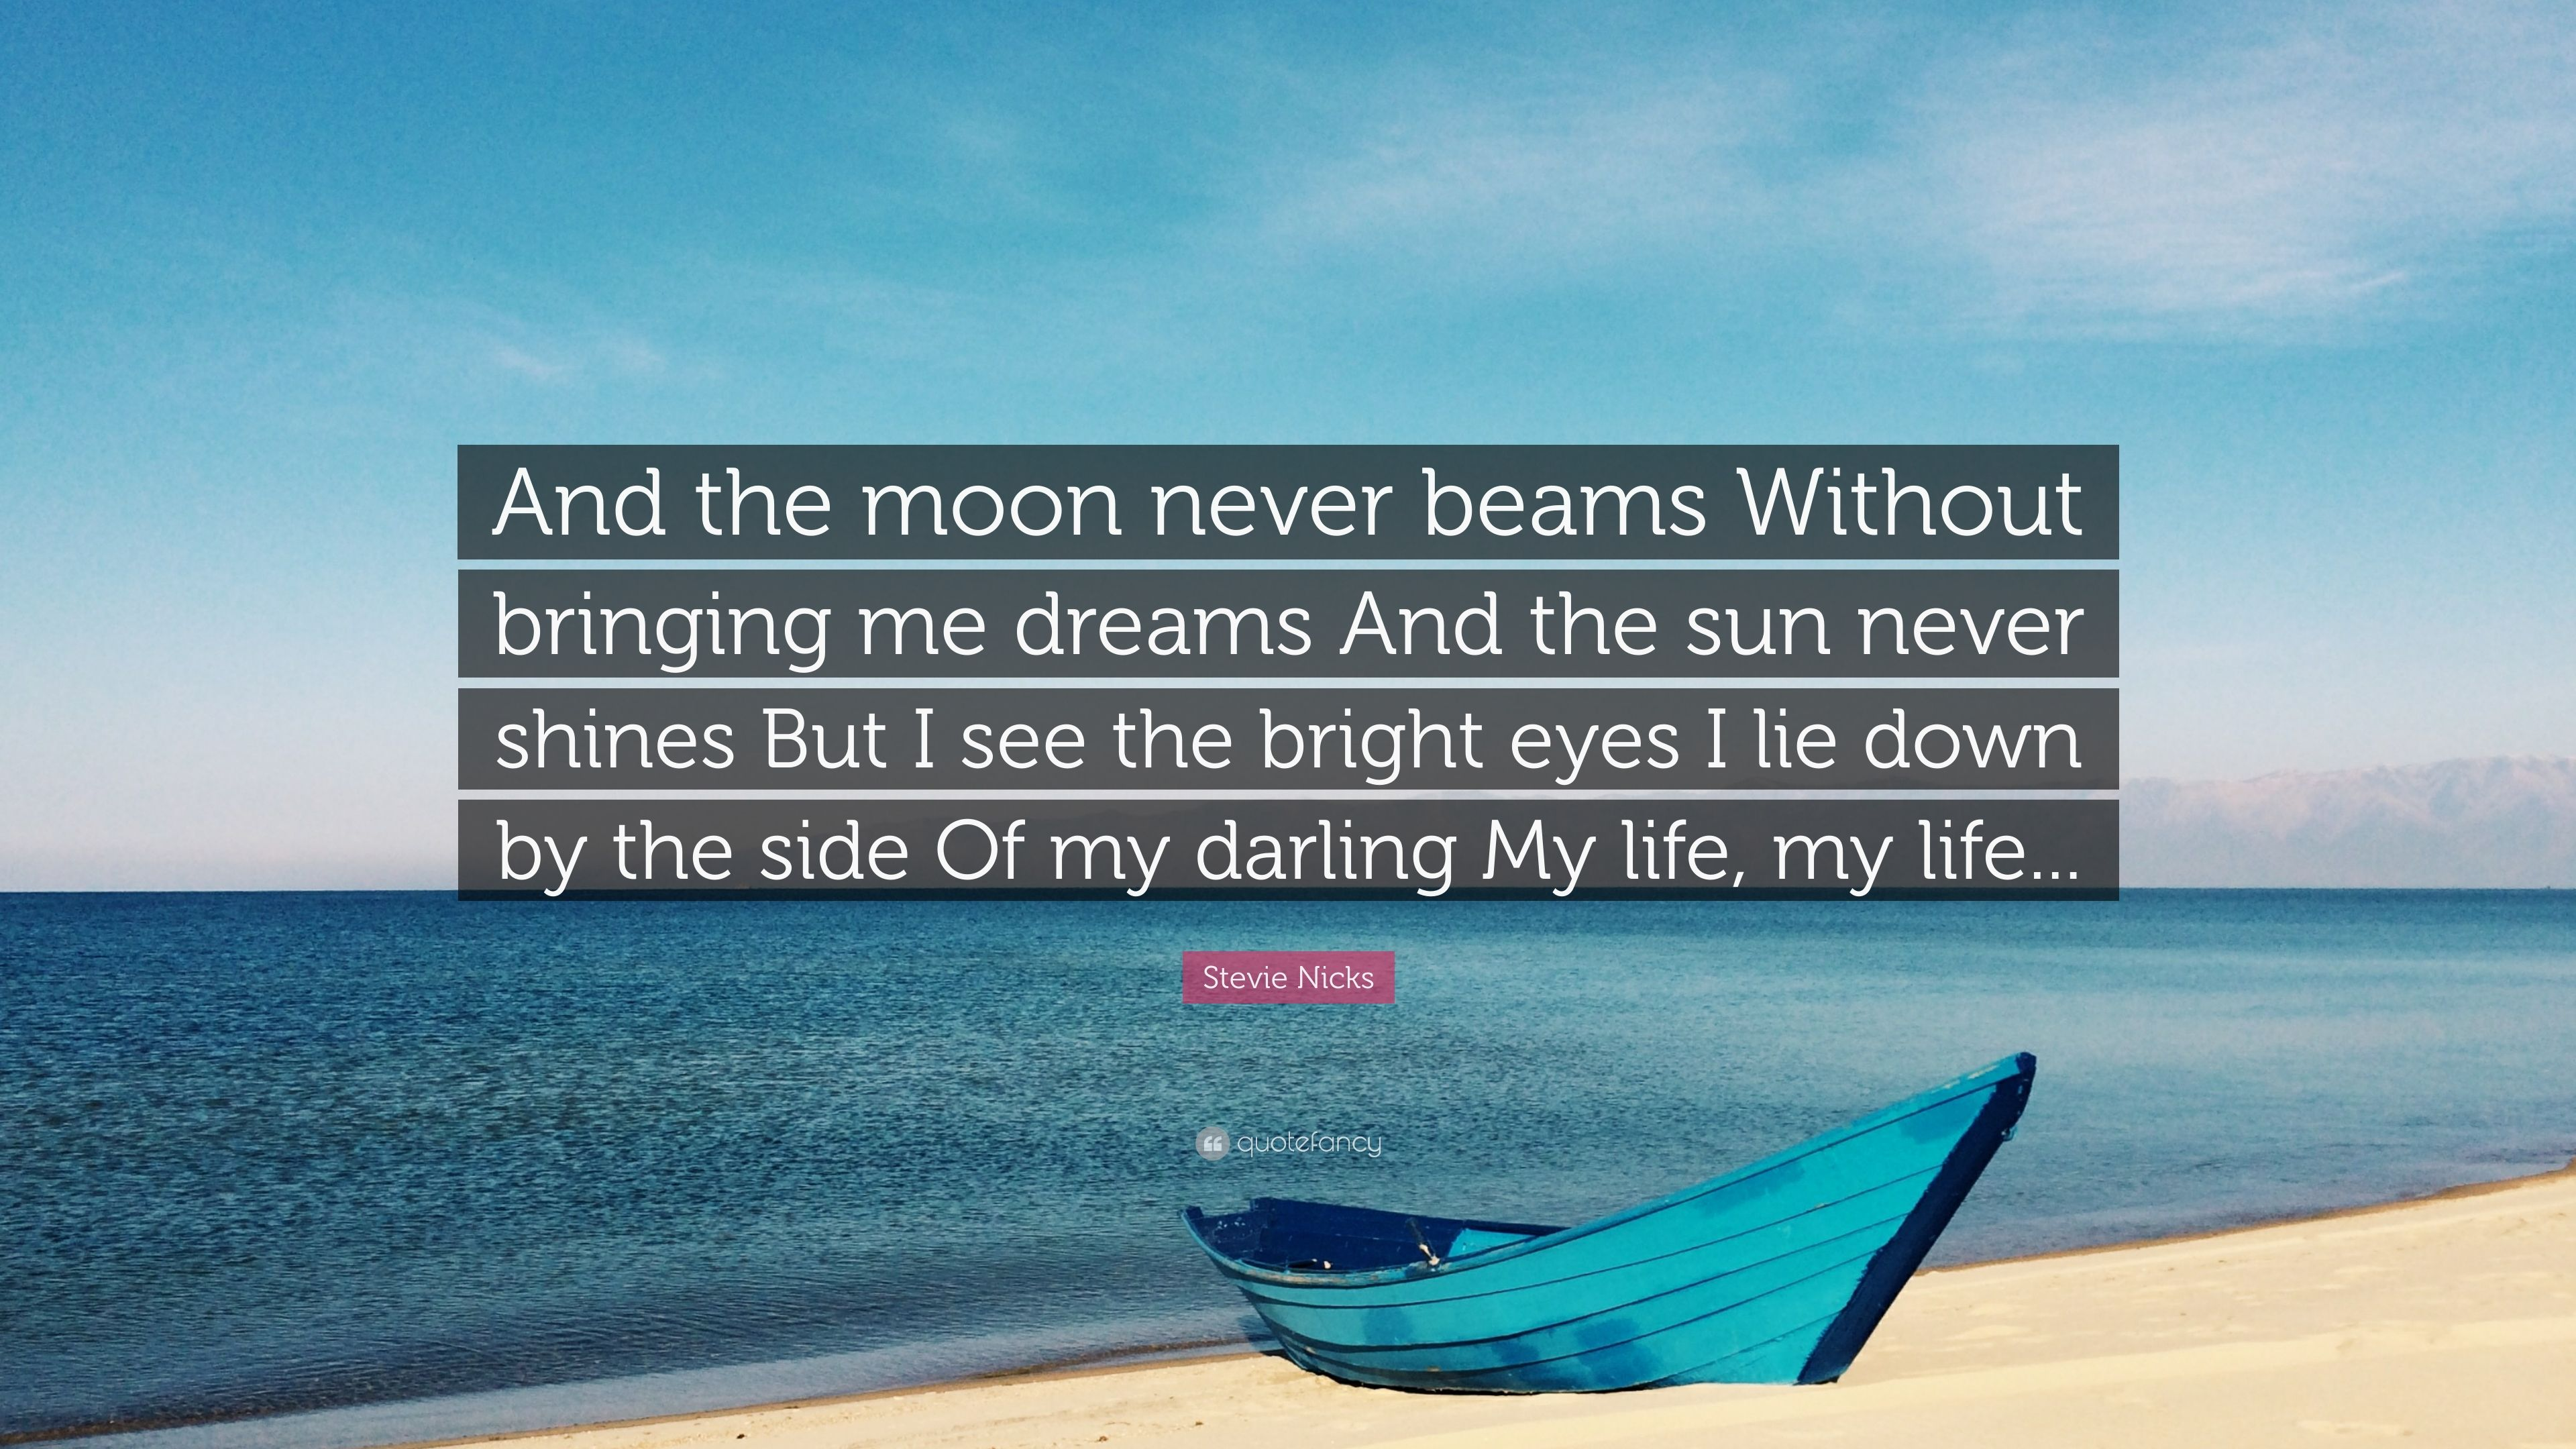 for the moon never beams essay